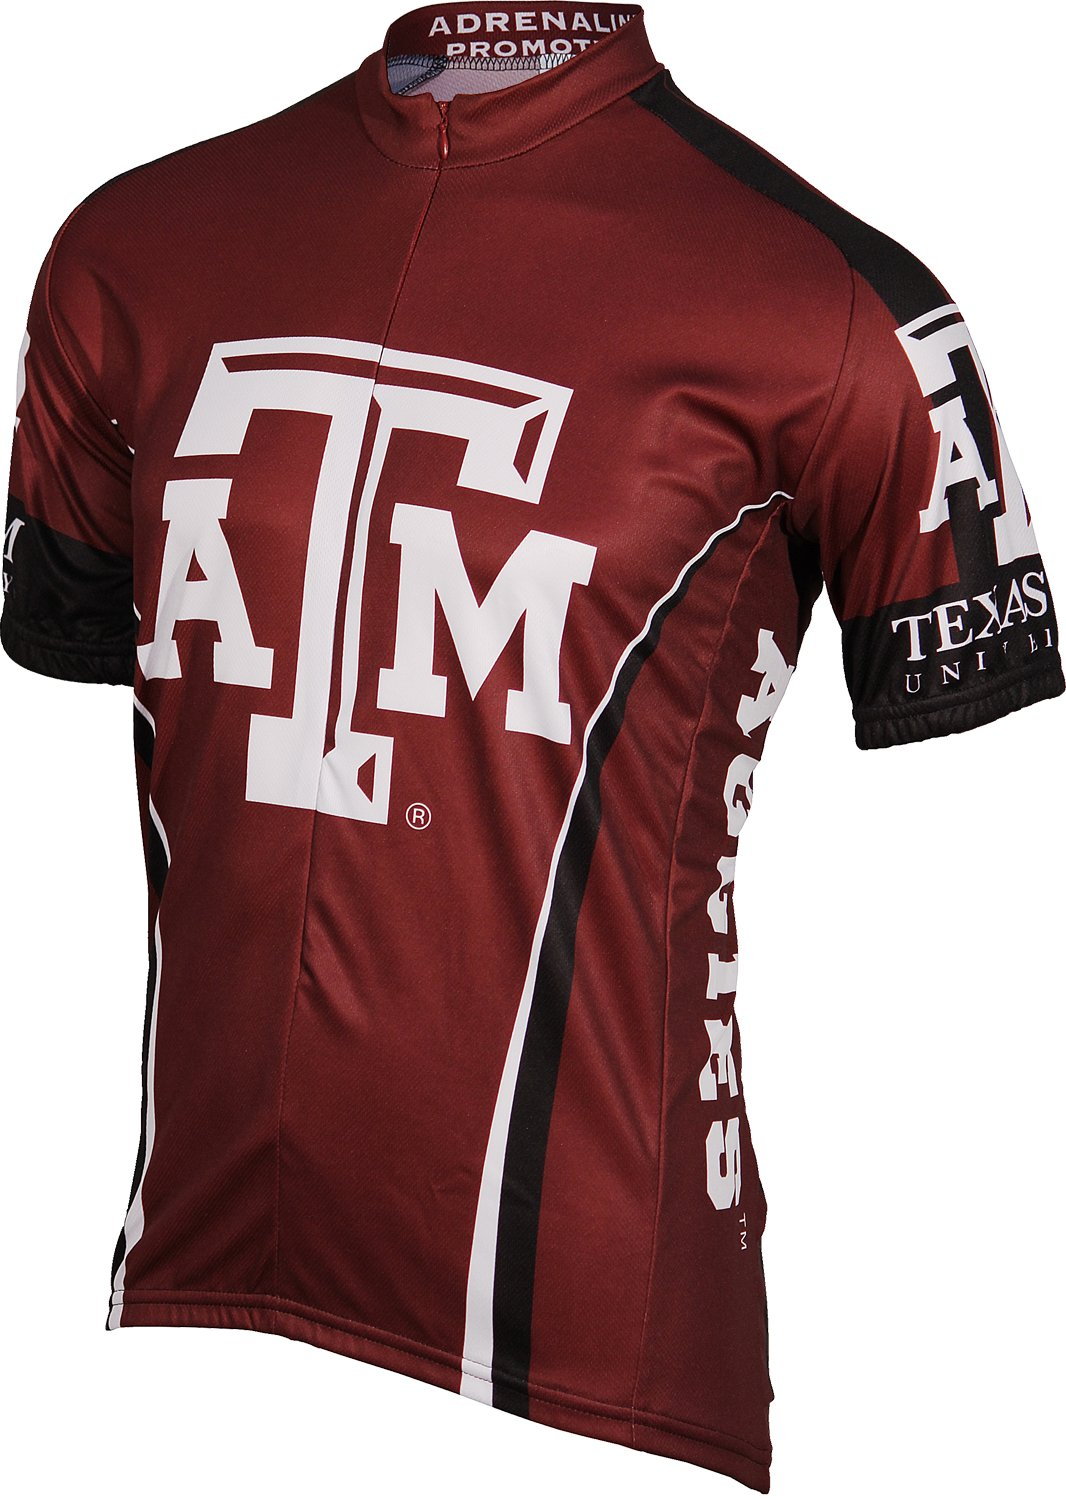 NCAA Texas A&M Cycling Jersey,Large(maroon/white)